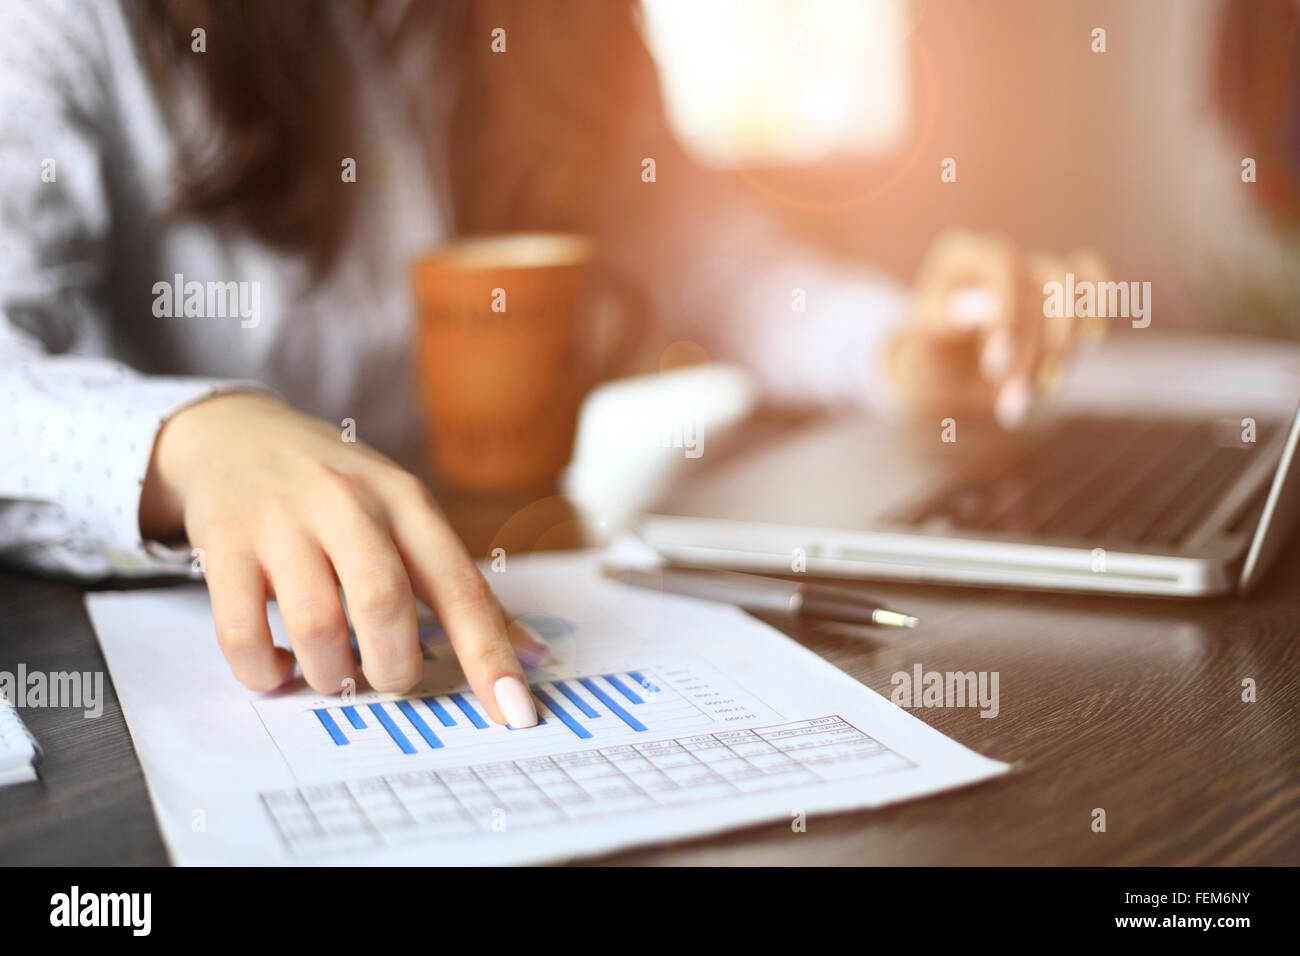 Hands of financial manager taking notes when working on report - Stock Image